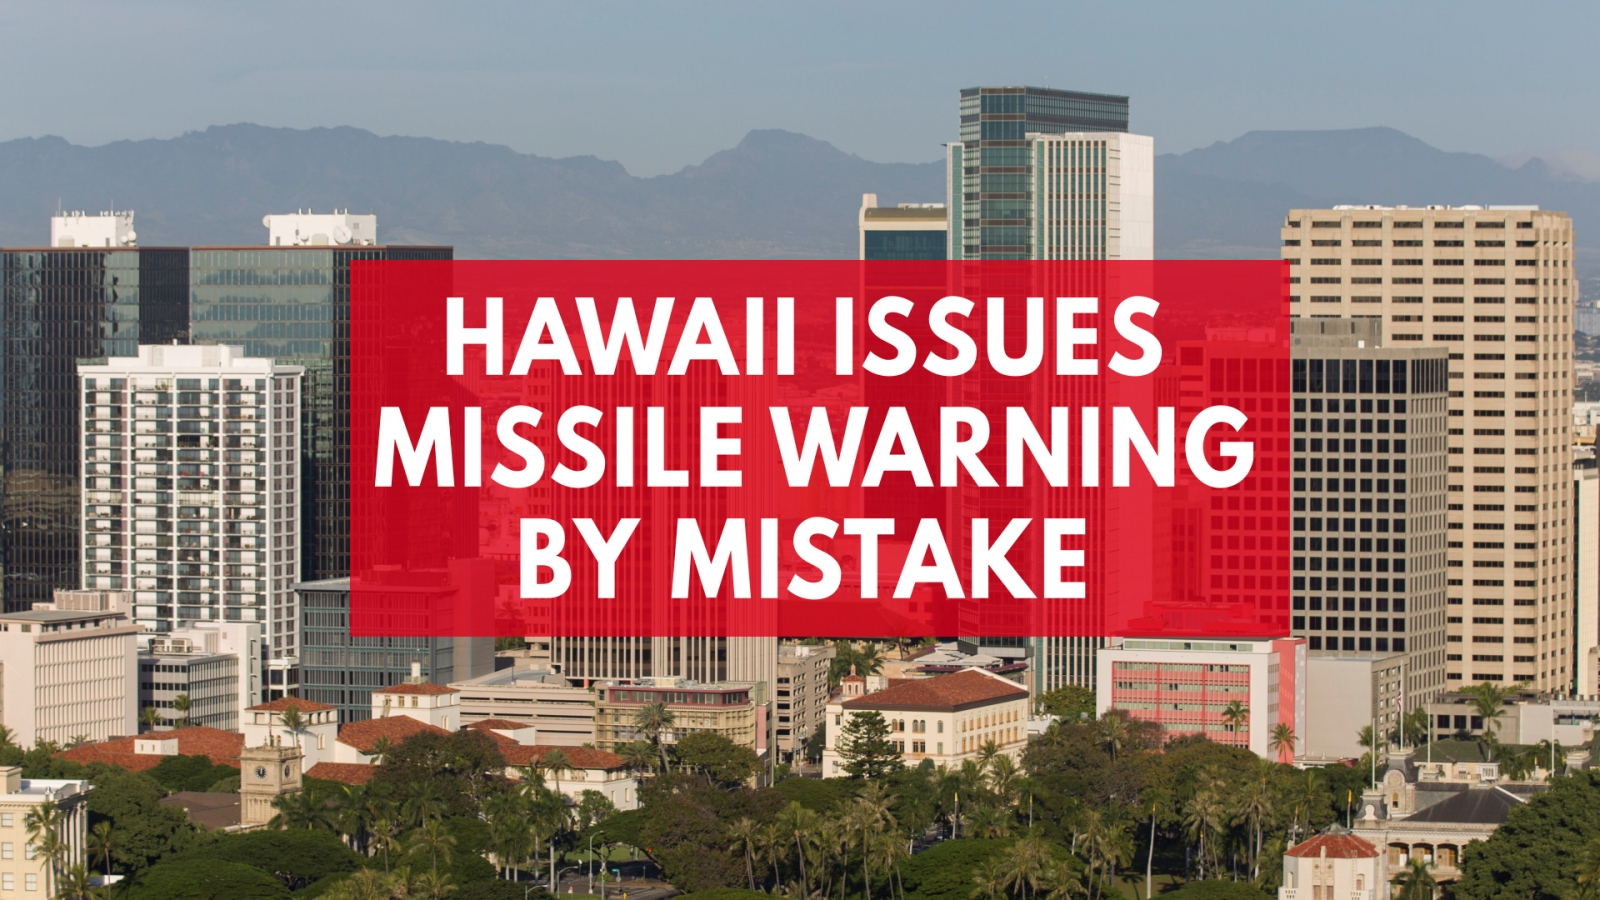 state-of-hawaii-issues-impending-missile-warning-by-mistake